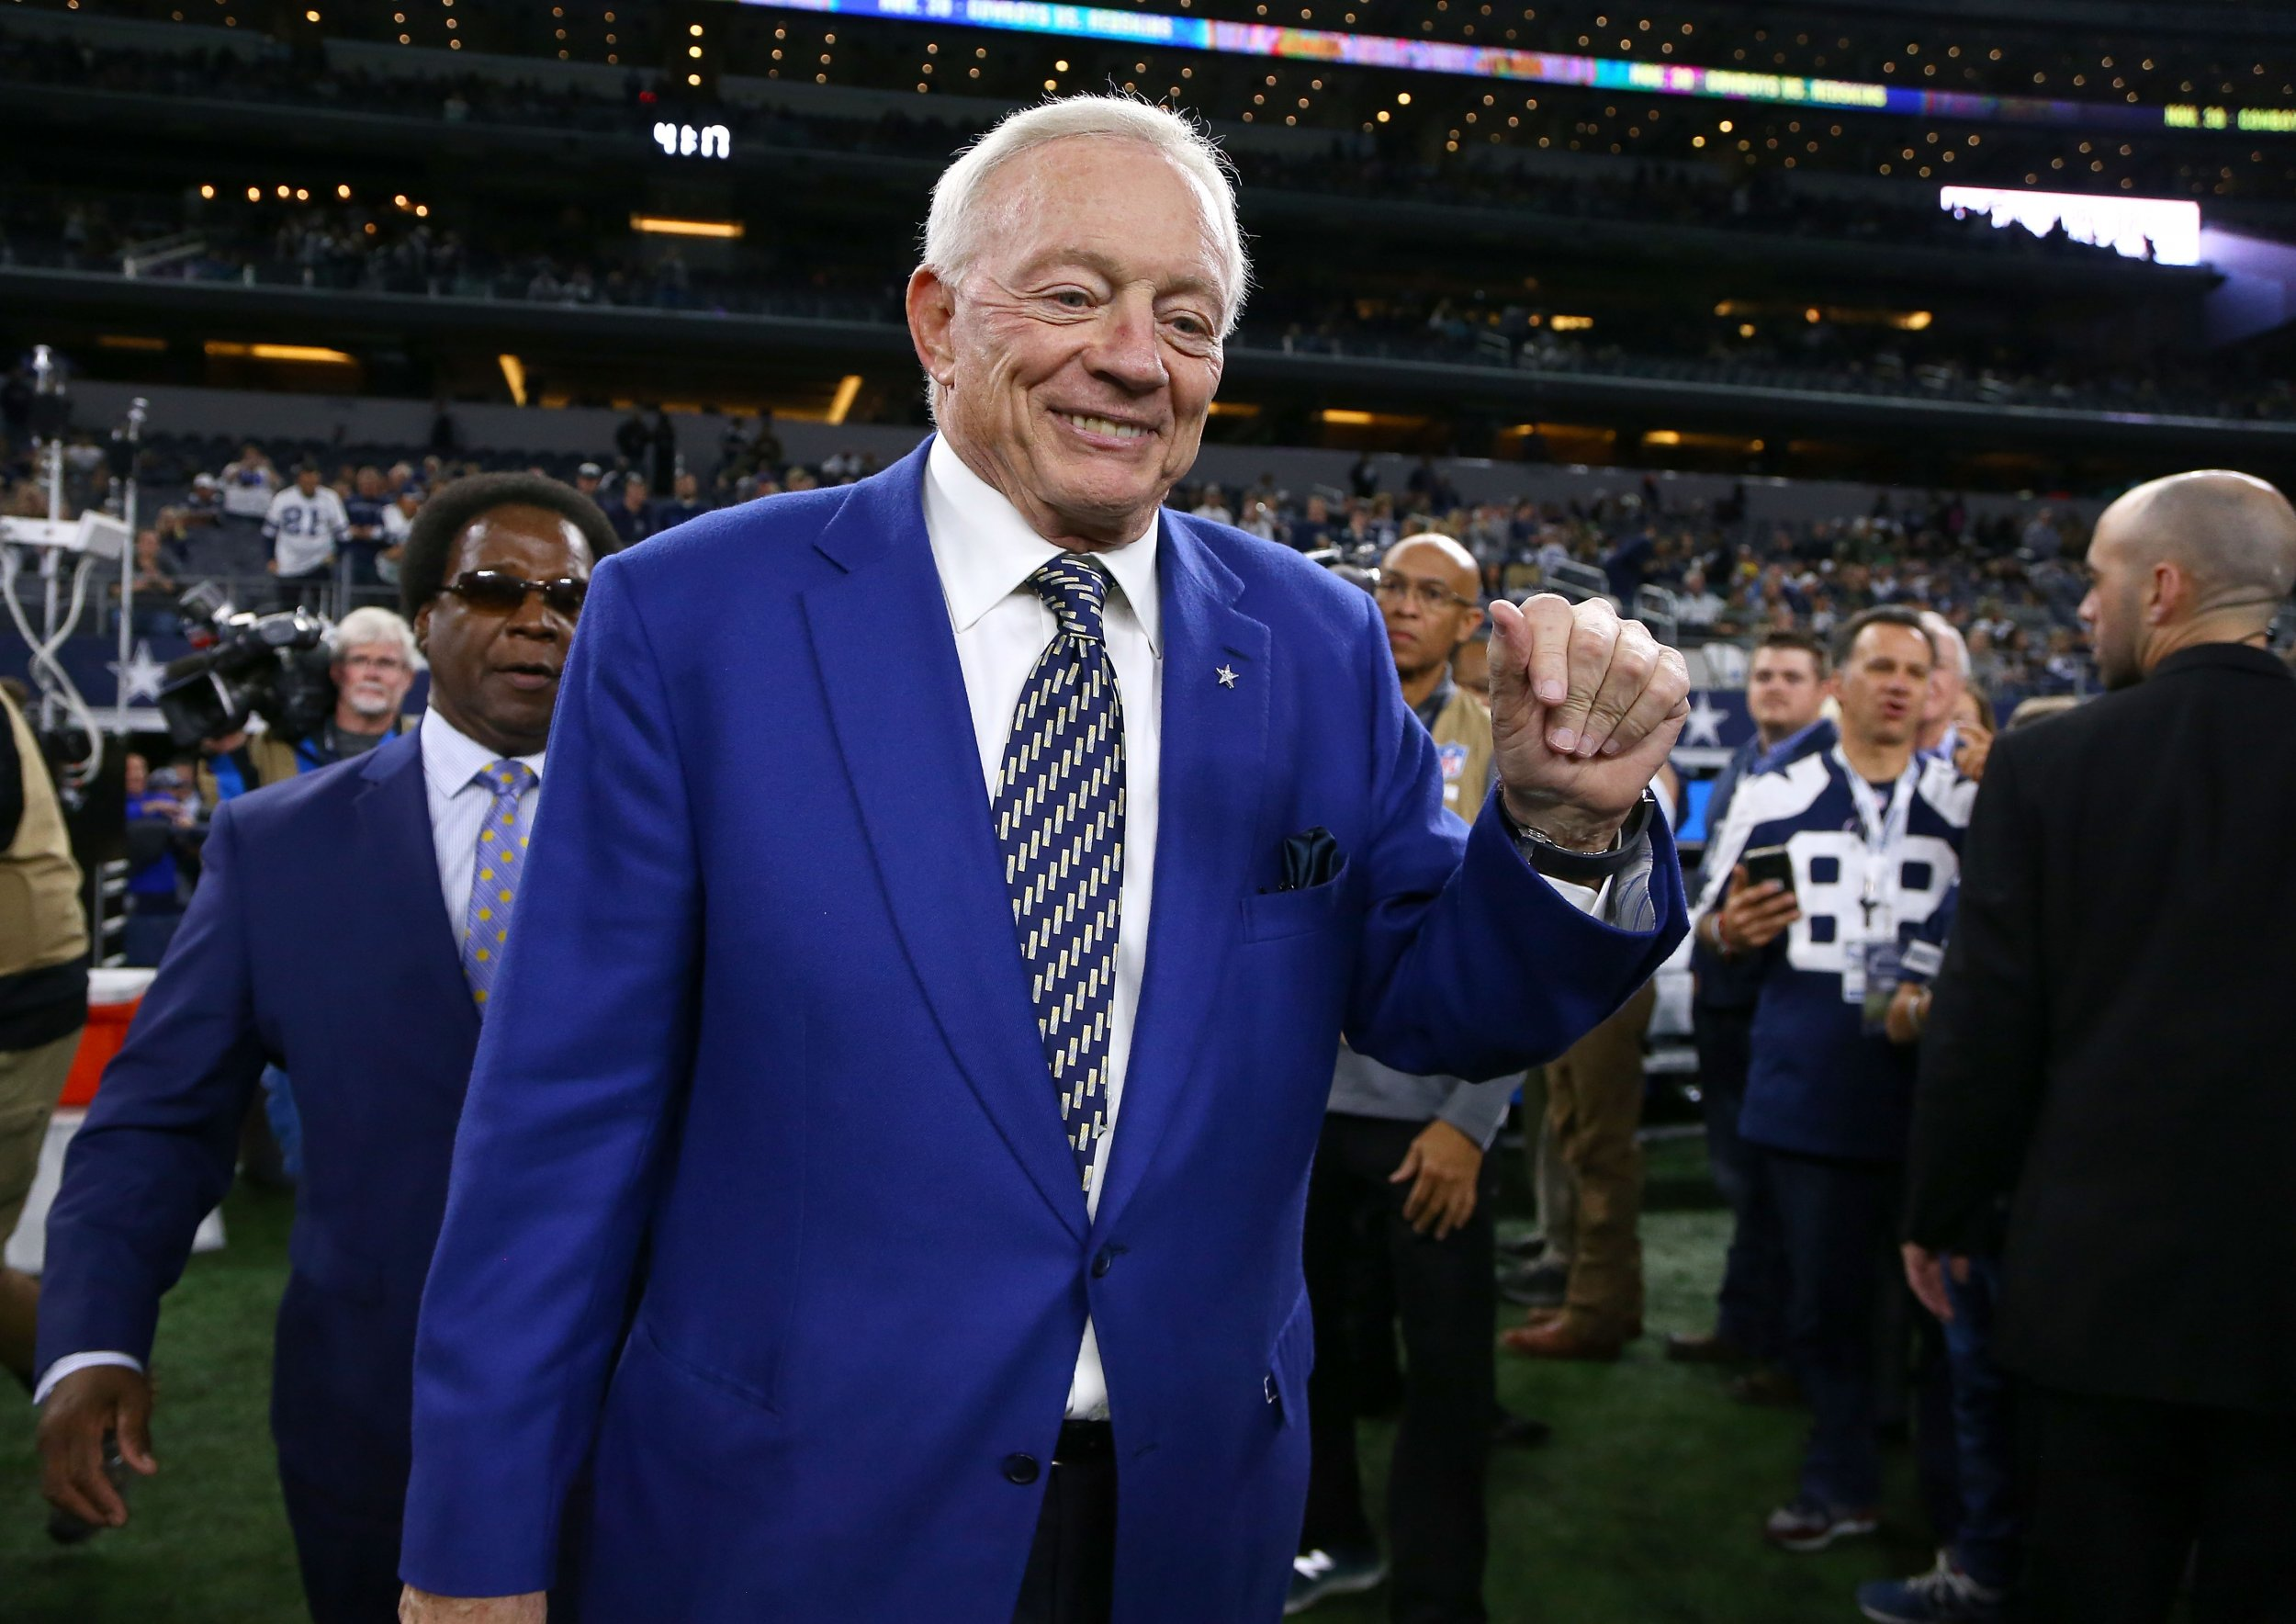 Jerry Jones, owner of the Dallas Cowboys, at AT&T Stadium in Arlington, Texas, November 19.